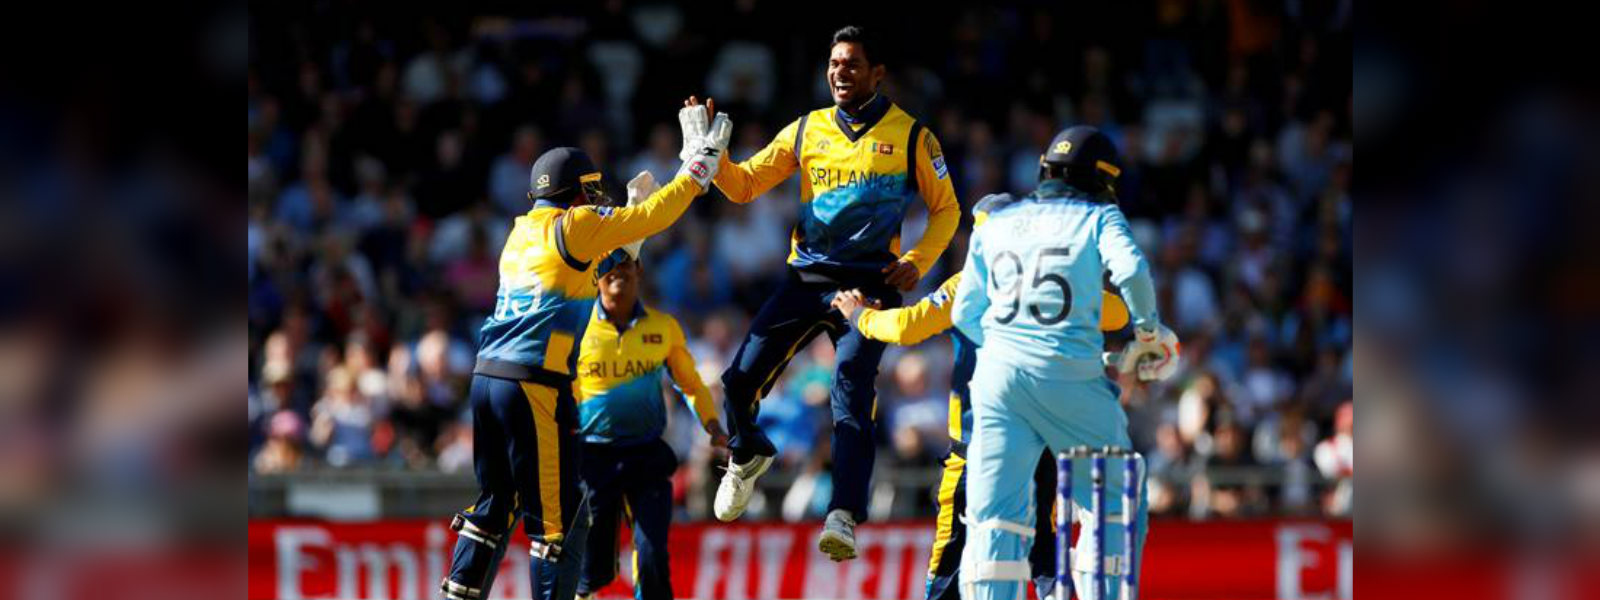 ICC Cricket World Cup: Sri Lanka shock hosts England